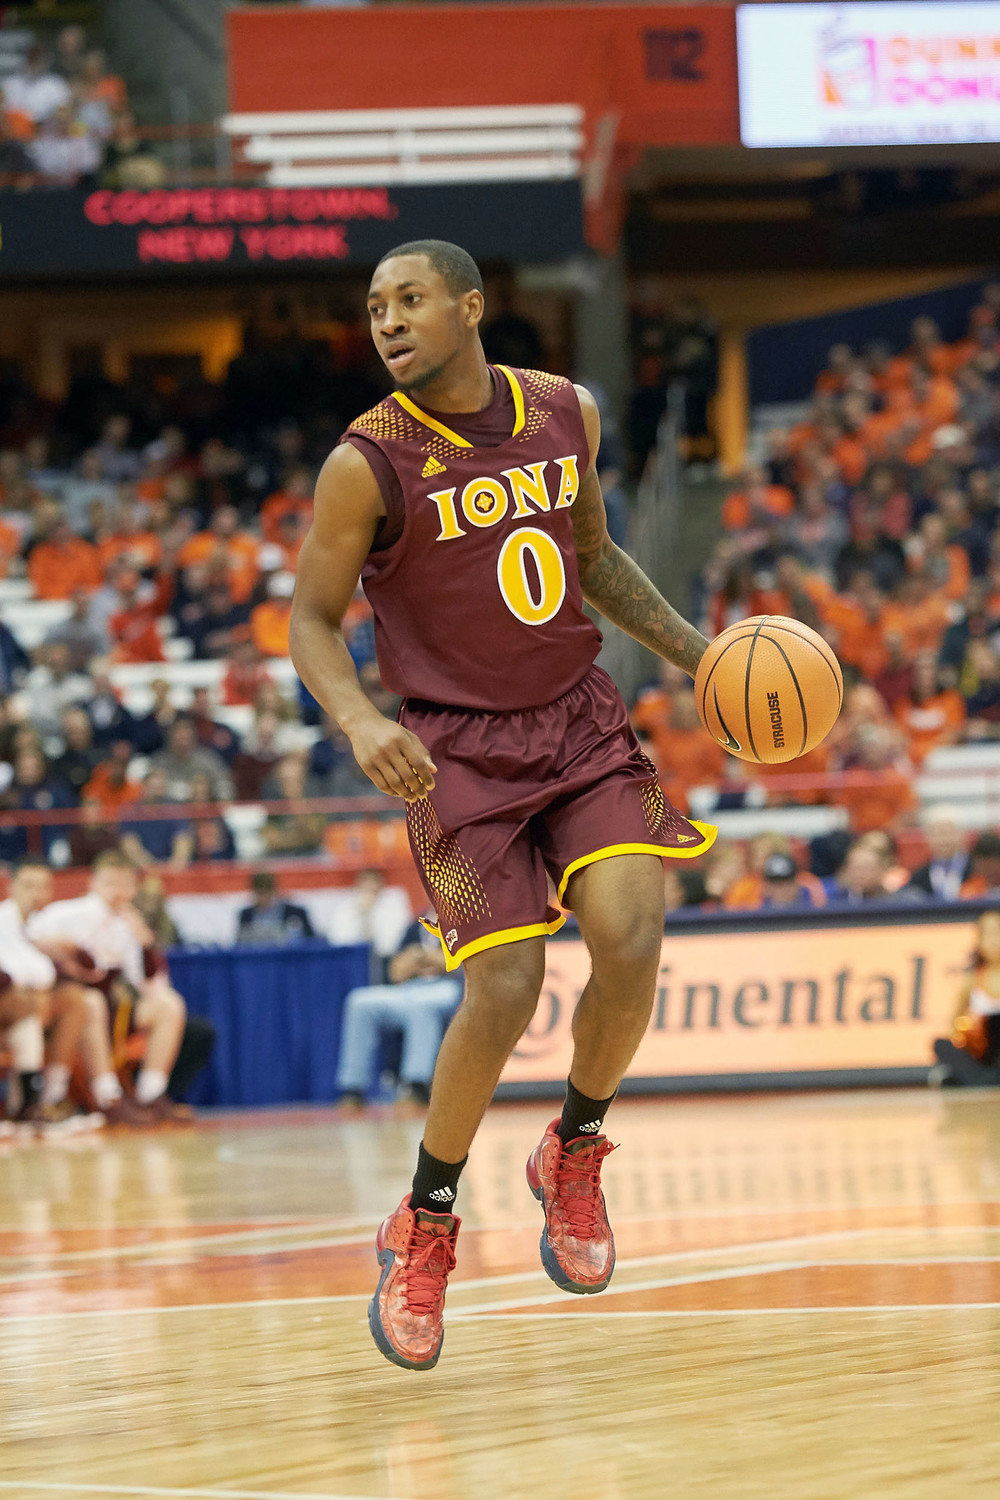 Iona junior point guard Rickey McGill runs the offense against Syracuse University Nov. 14.